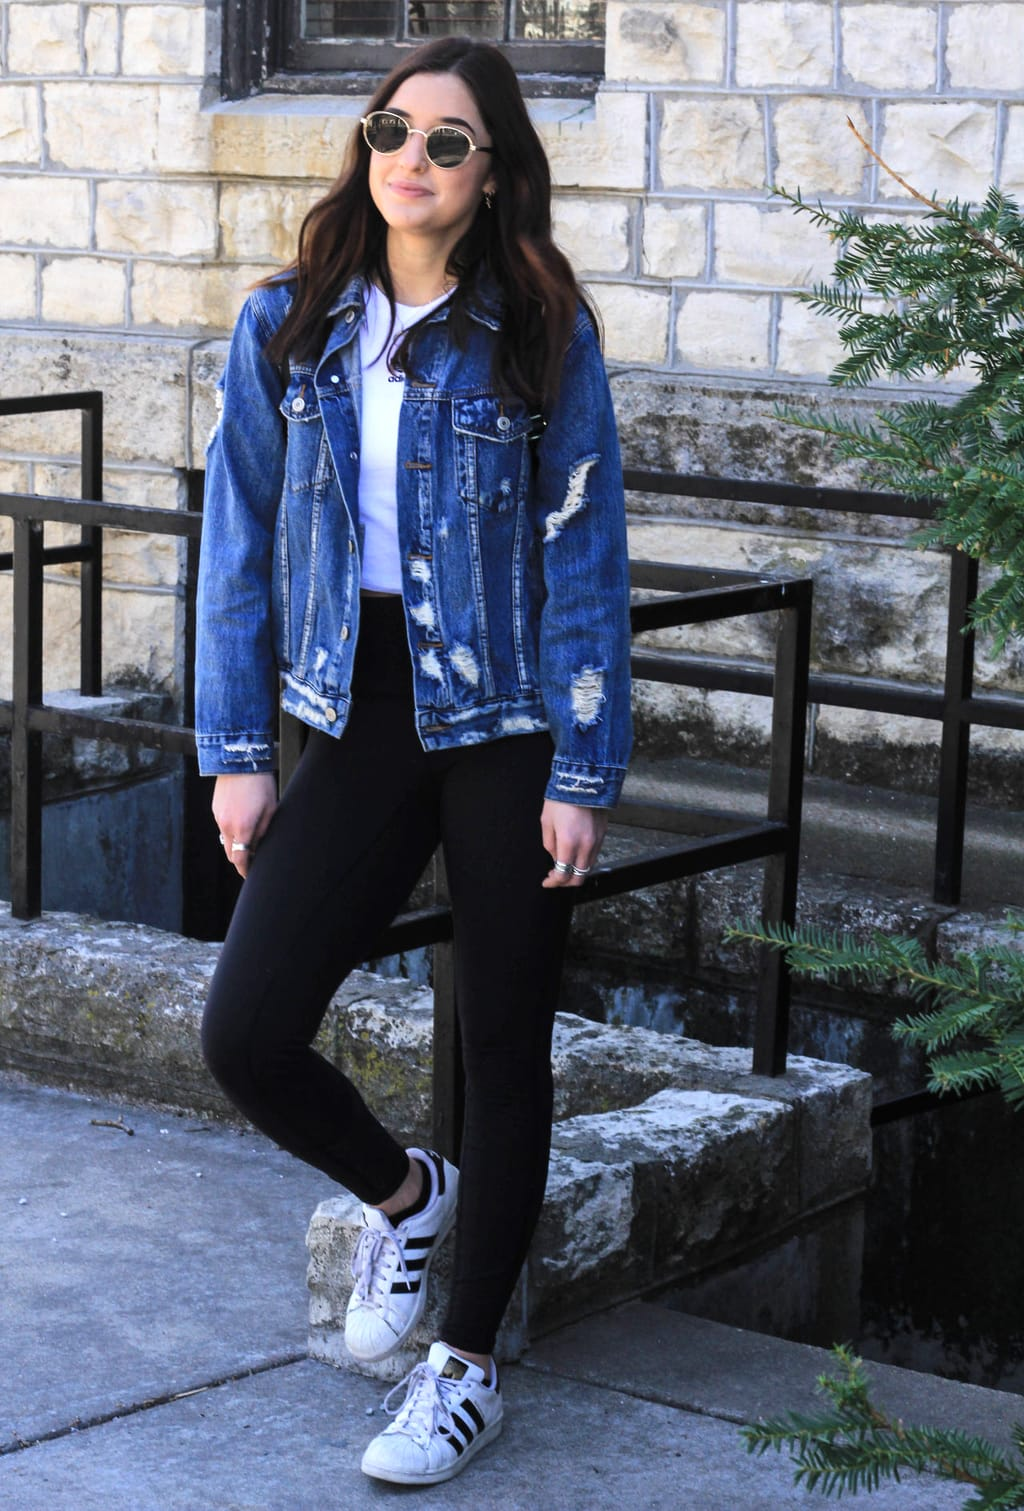 Kansas State University student Bailey wears a casual white tee with high-rise black leggings, a distressed, oversized denim jacket, worn-in Adidas all star sneakers, and round retro gold-rimmed sunglasses.